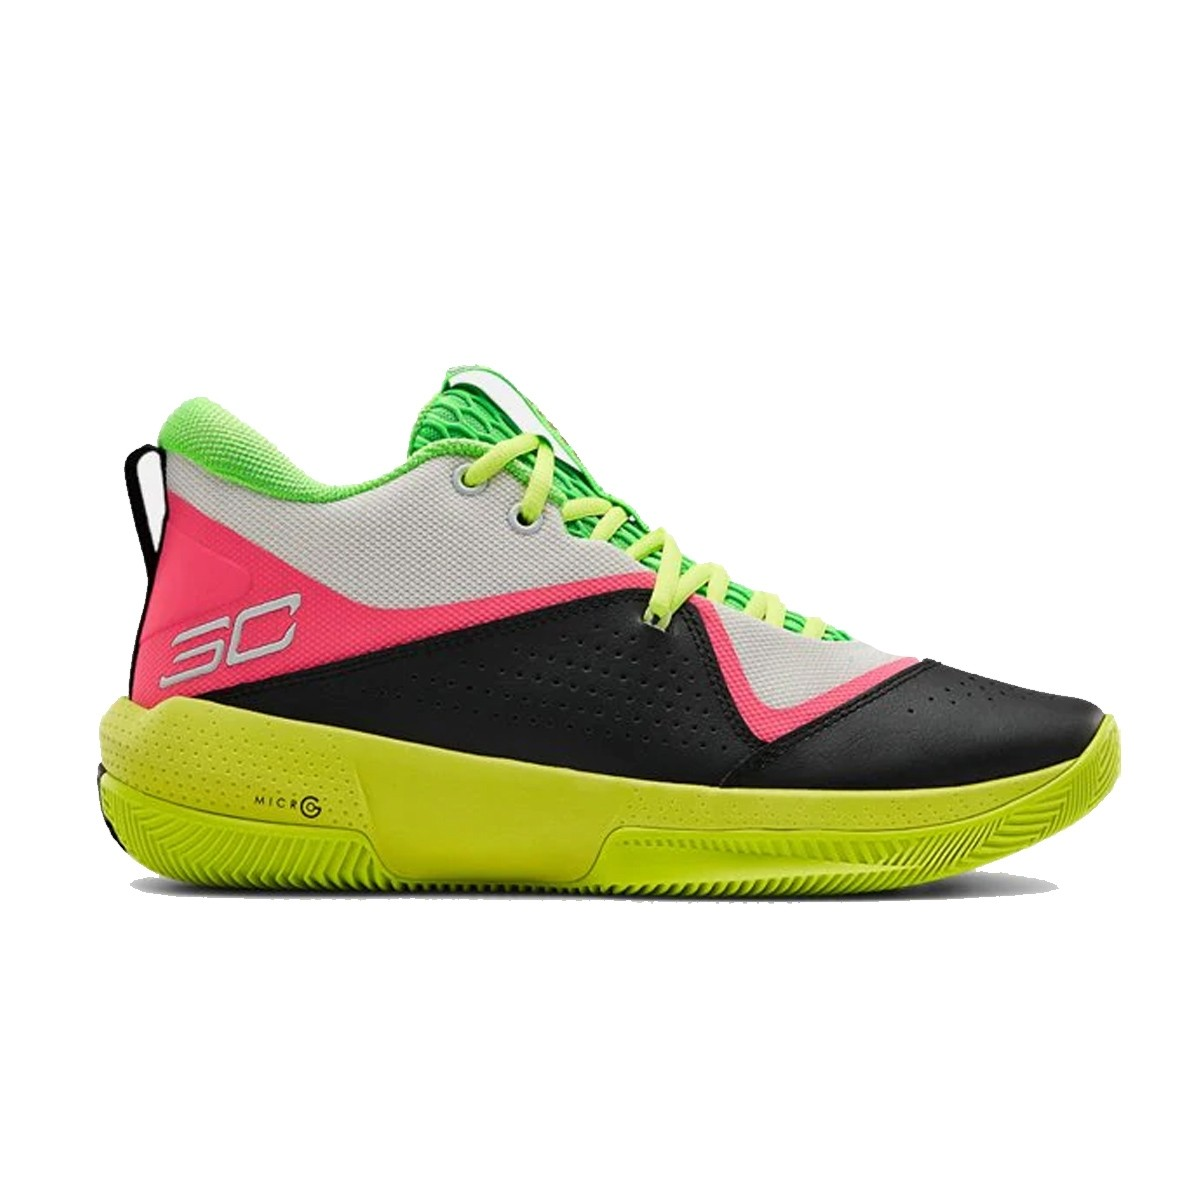 Under Armour UA SC 3Zero IV GS 'Pigalle'